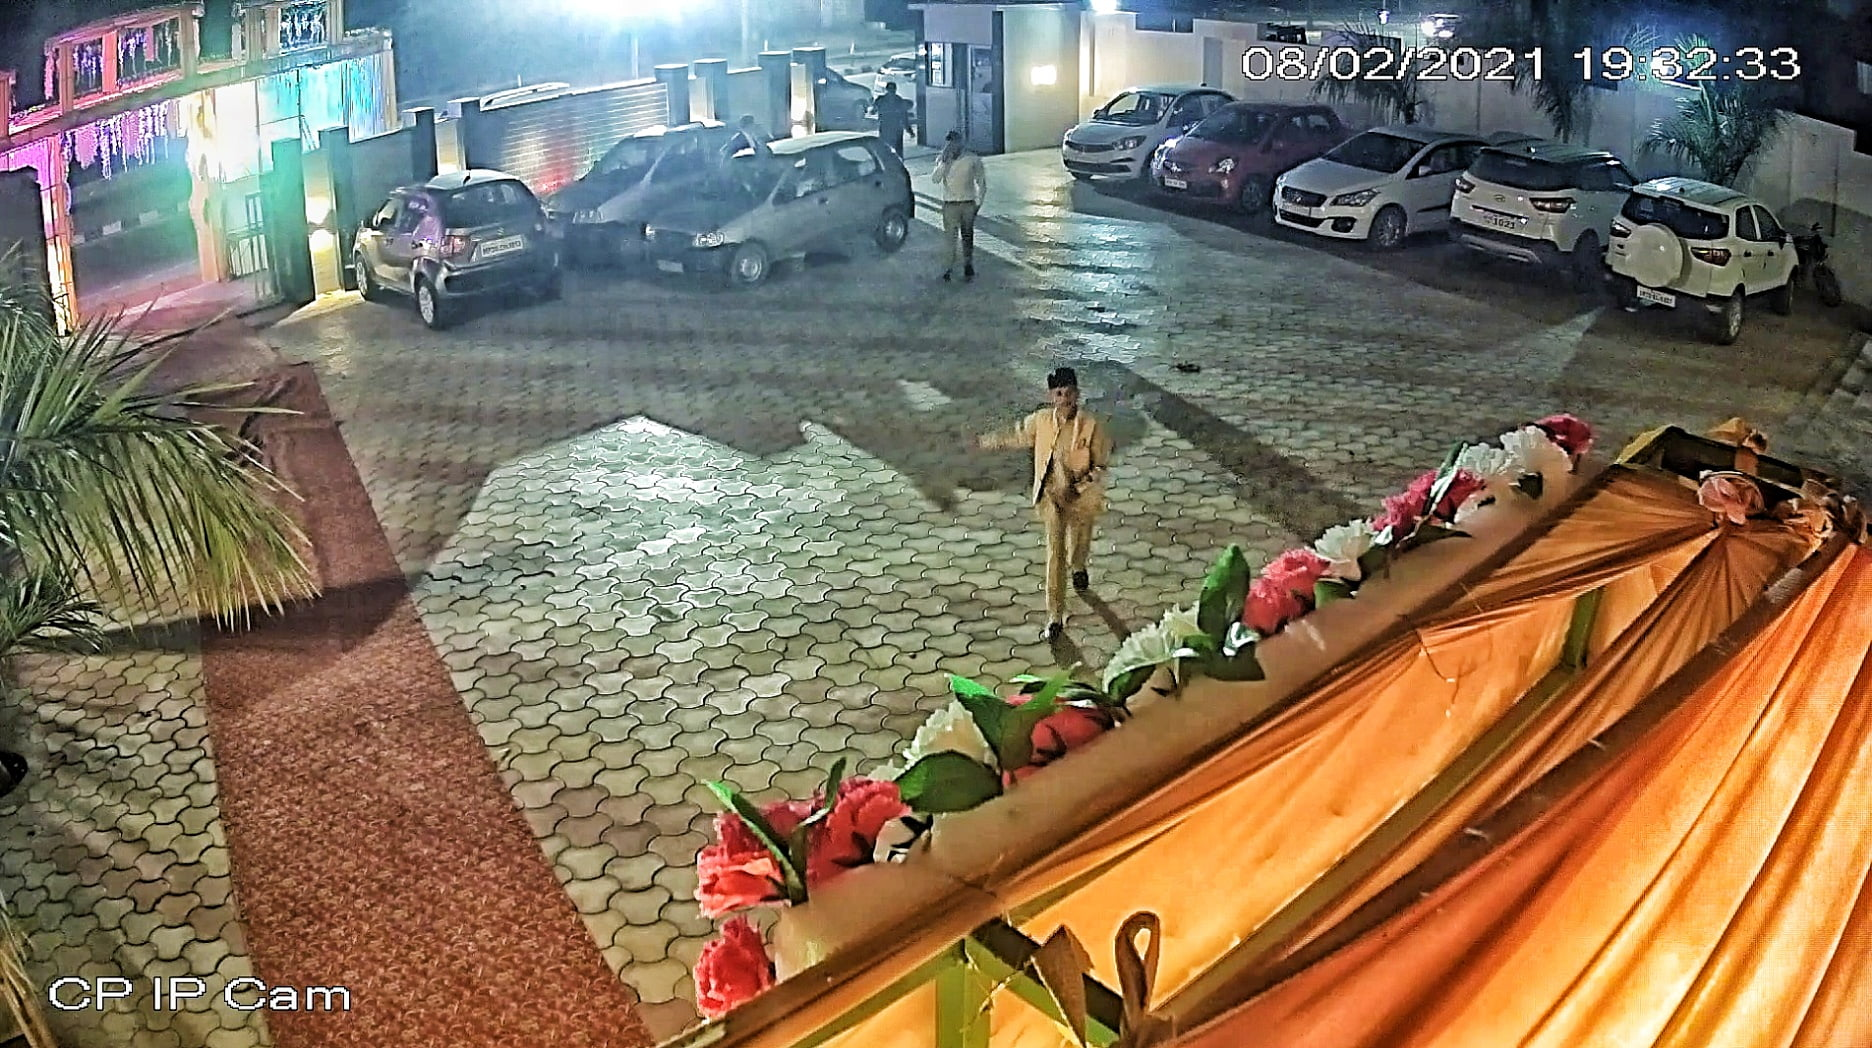 Lakhs worth of goods stolen from transport owner's party